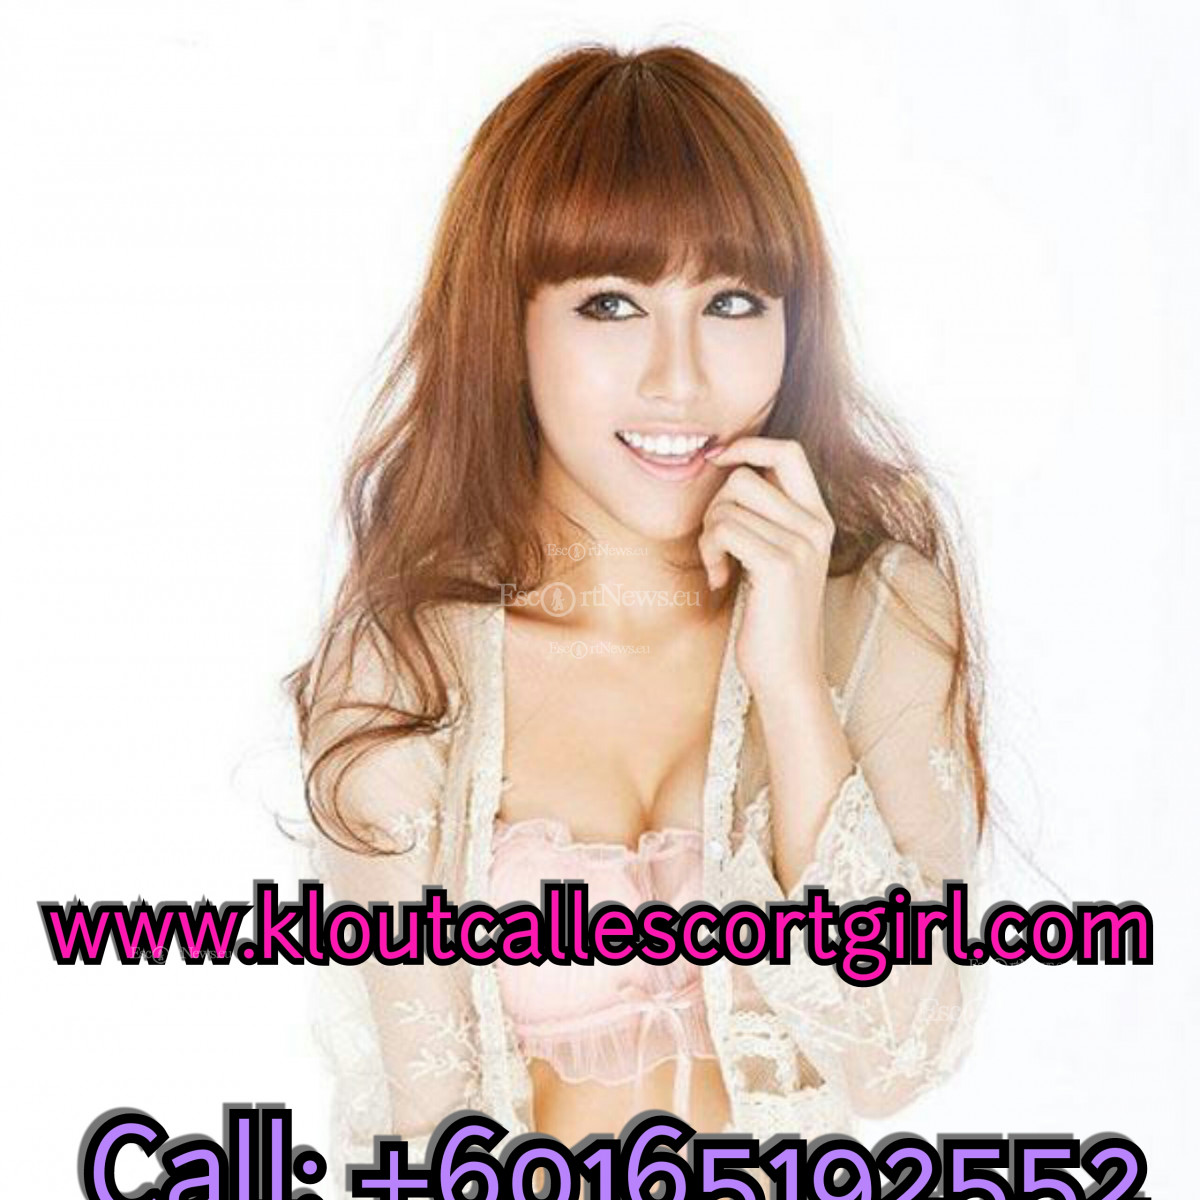 escorte incall escort and massage